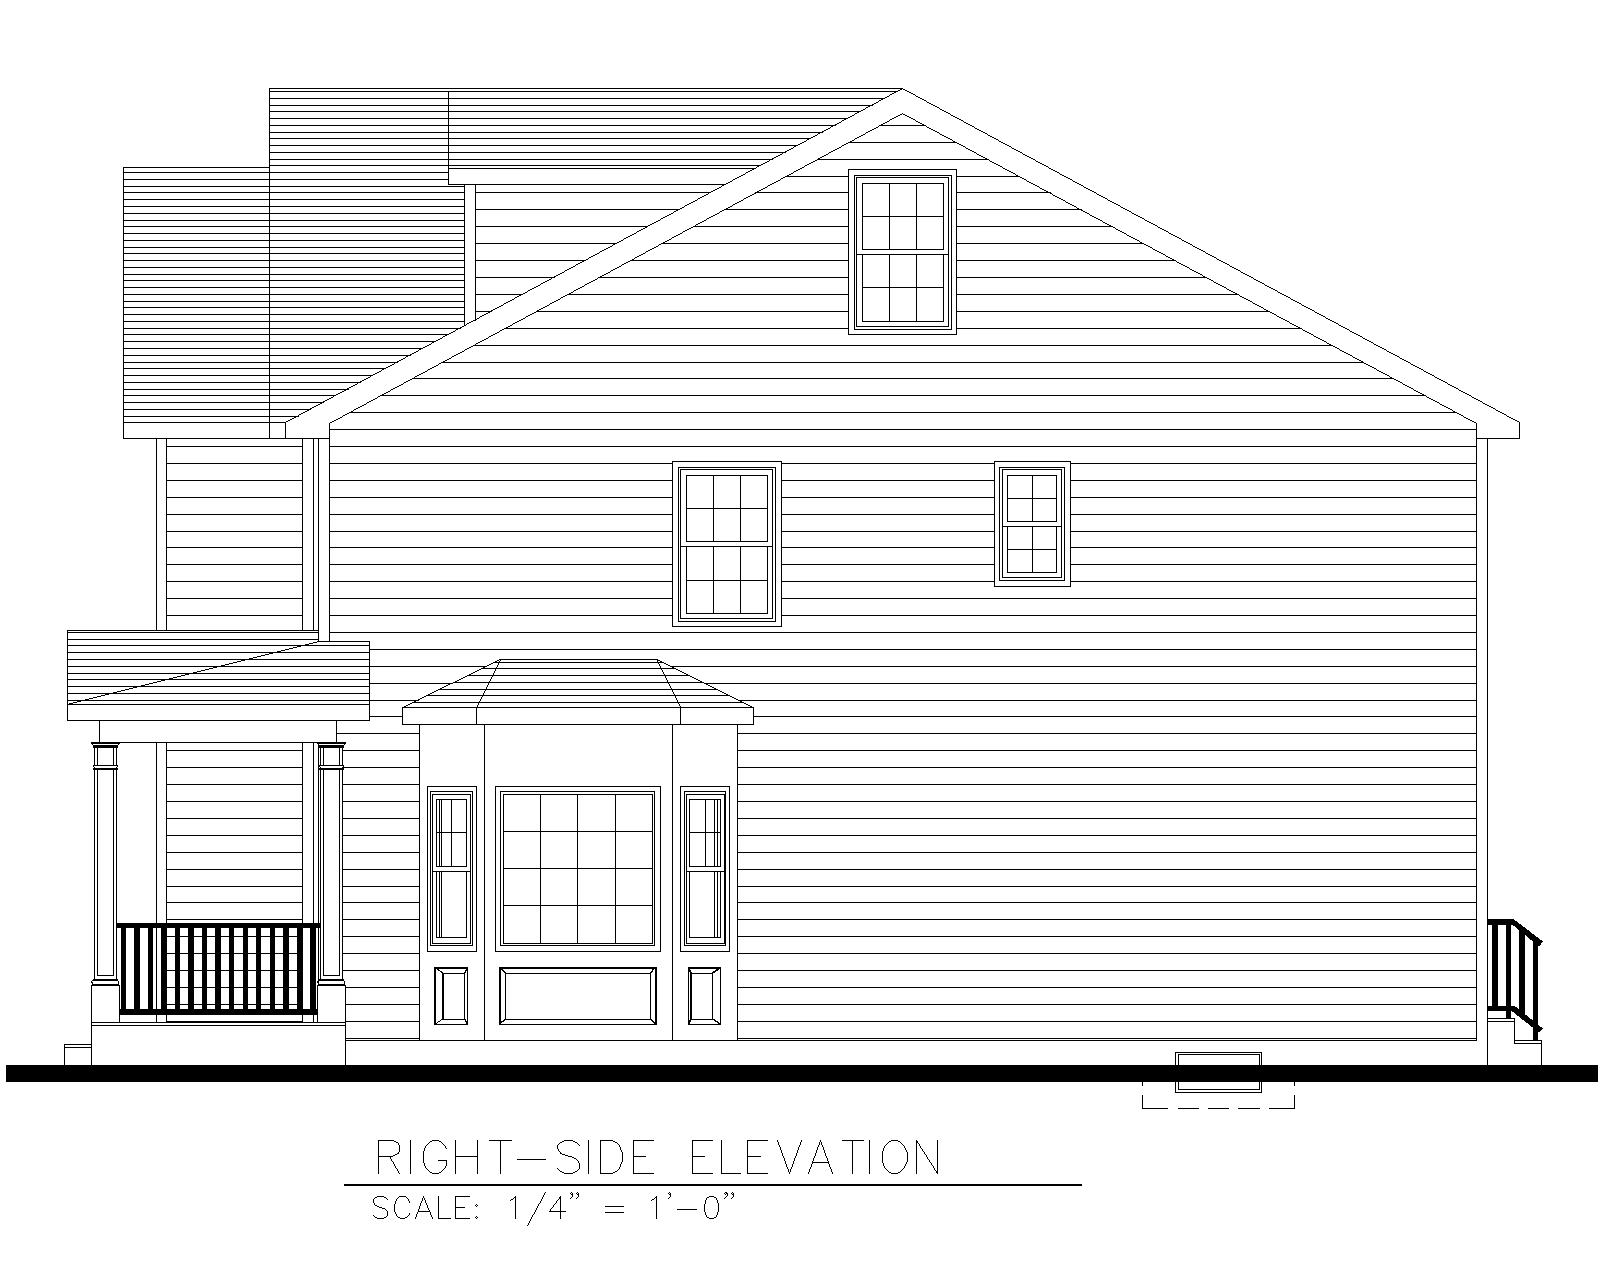 5 Village Right Side Elevation